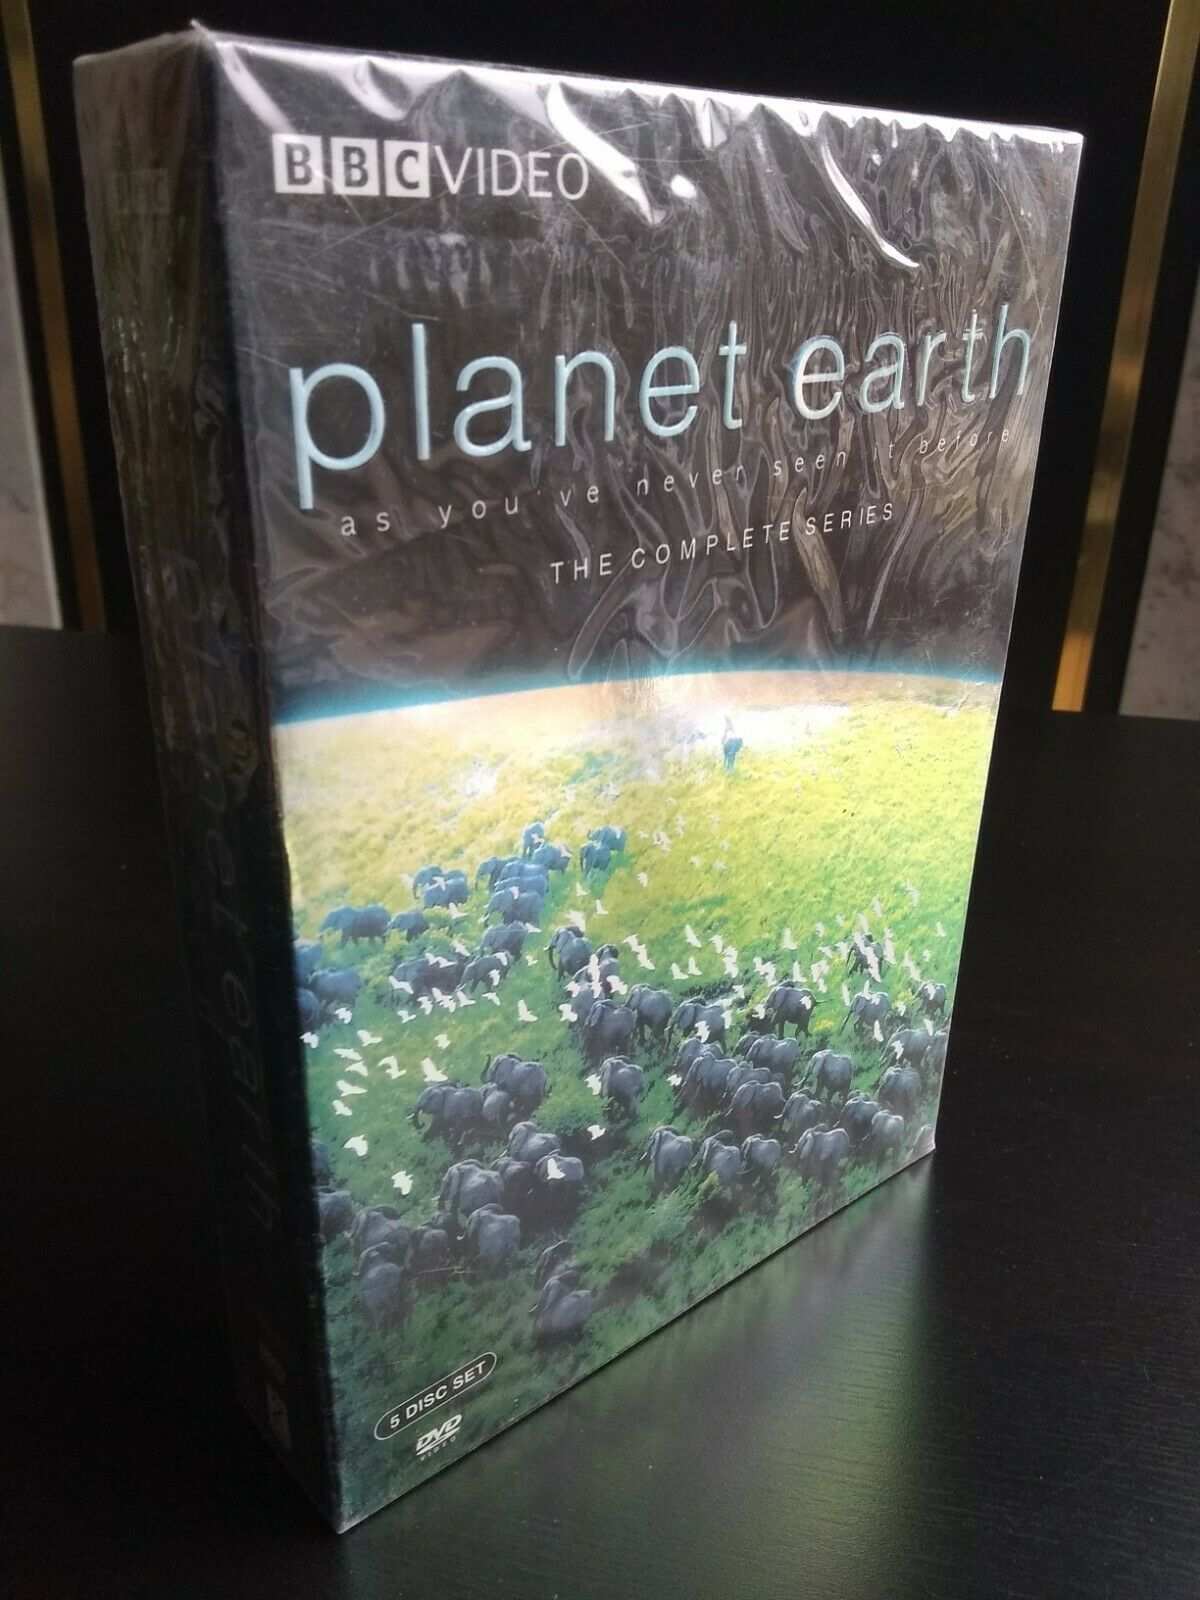 Planet Earth - The Complete Series (DVD, 2007, 5-Disc Set)